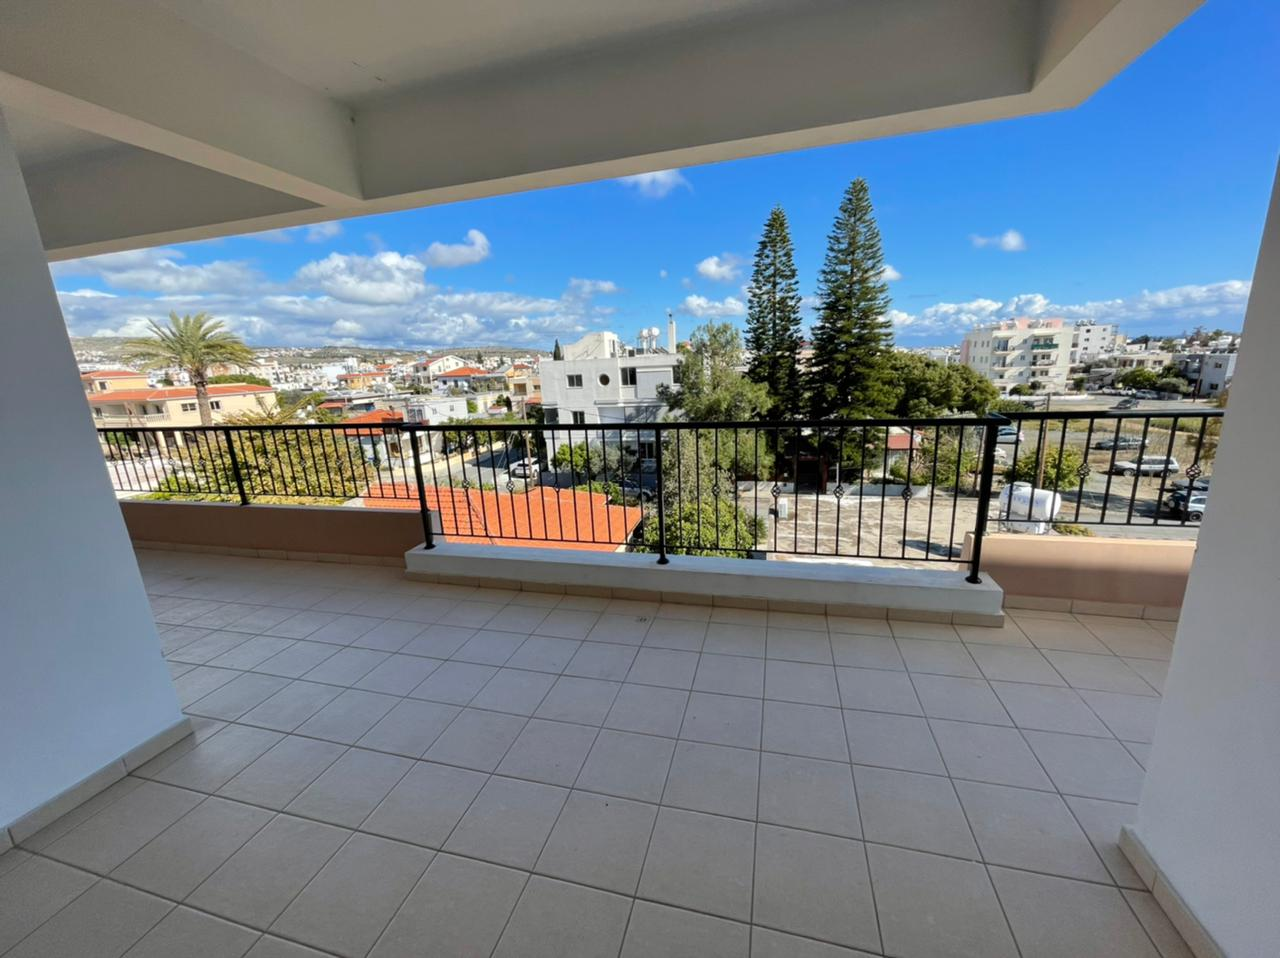 3 bedroom apartment in center of the Paphos